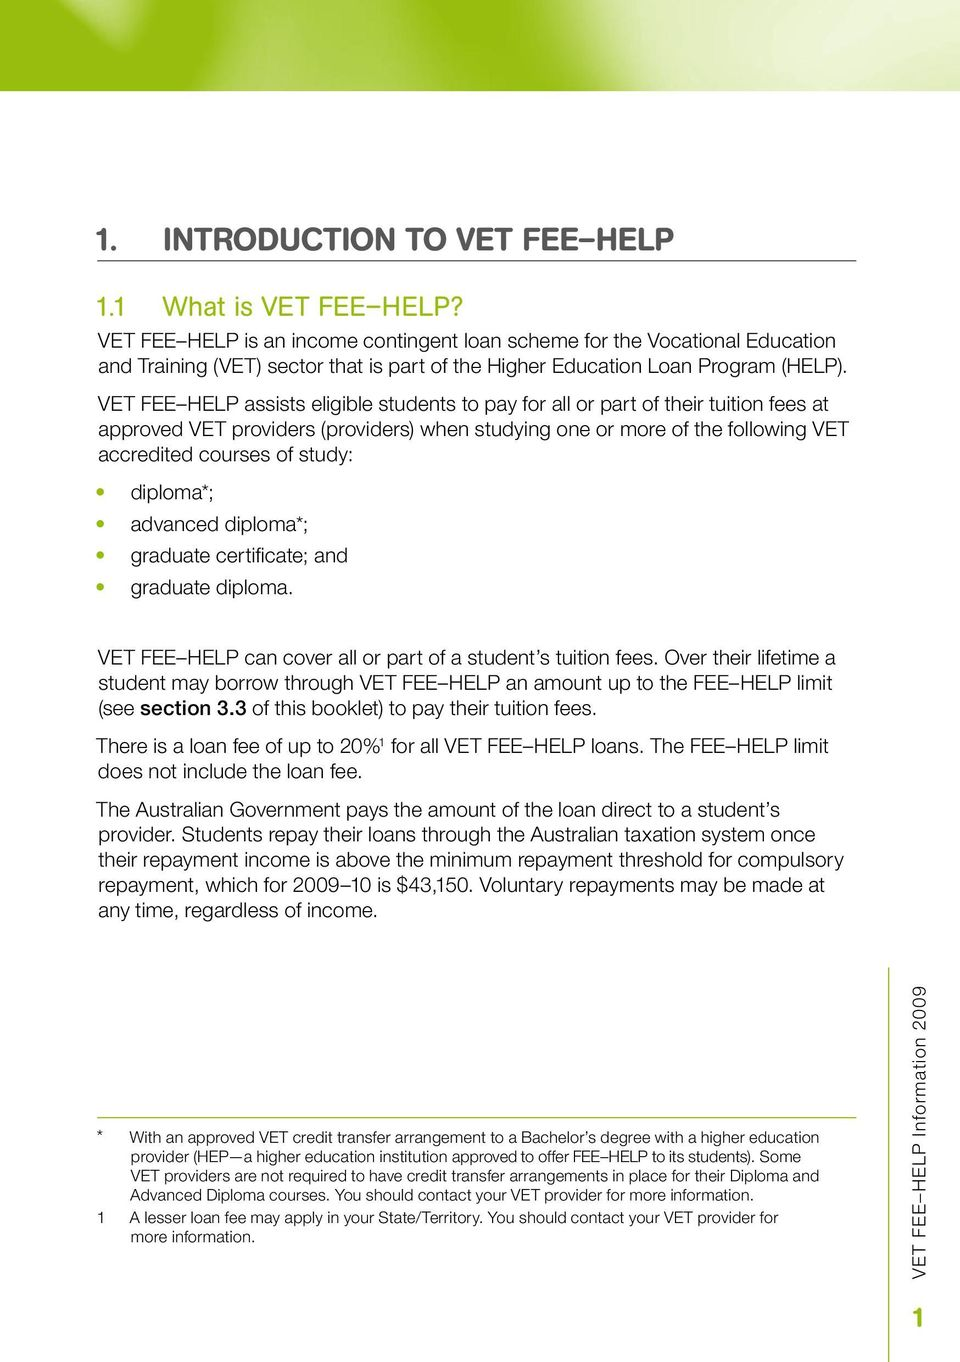 VET FEE HELP assists eligible students to pay for all or part of their tuition fees at approved VET providers (providers) when studying one or more of the following VET accredited courses of study: